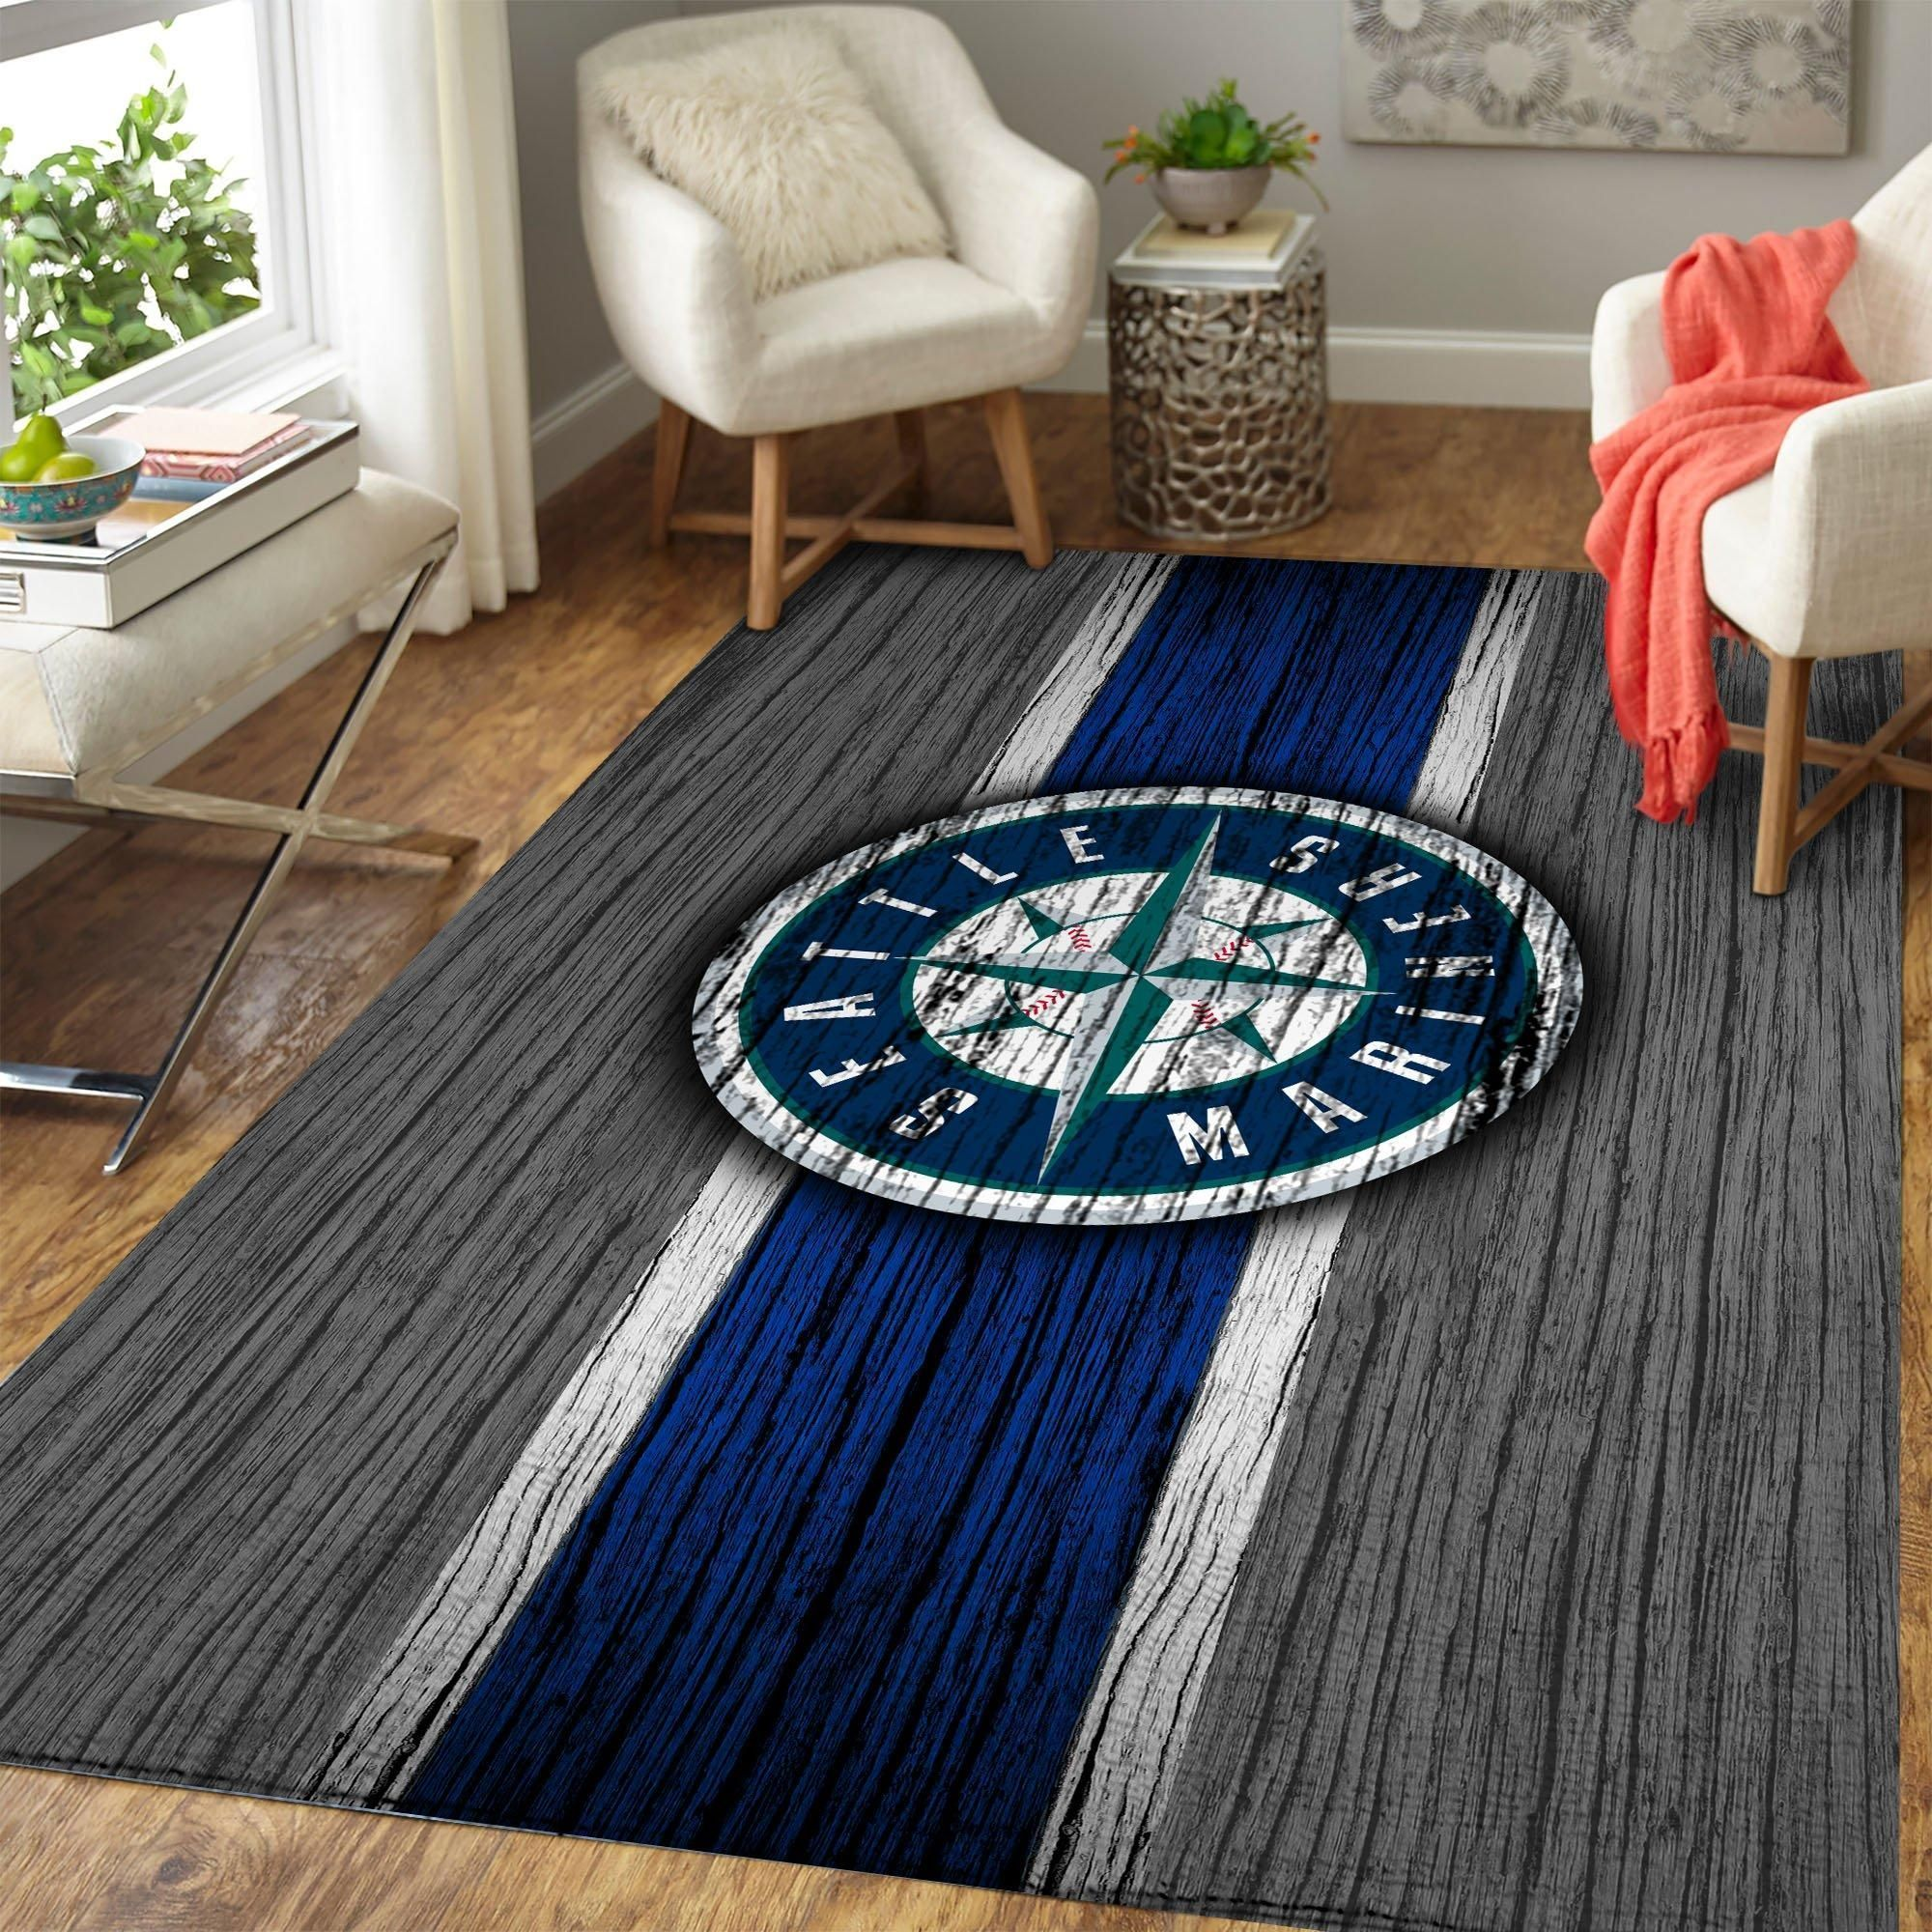 Amazon Seattle Mariners Living Room Area No4950 Rug